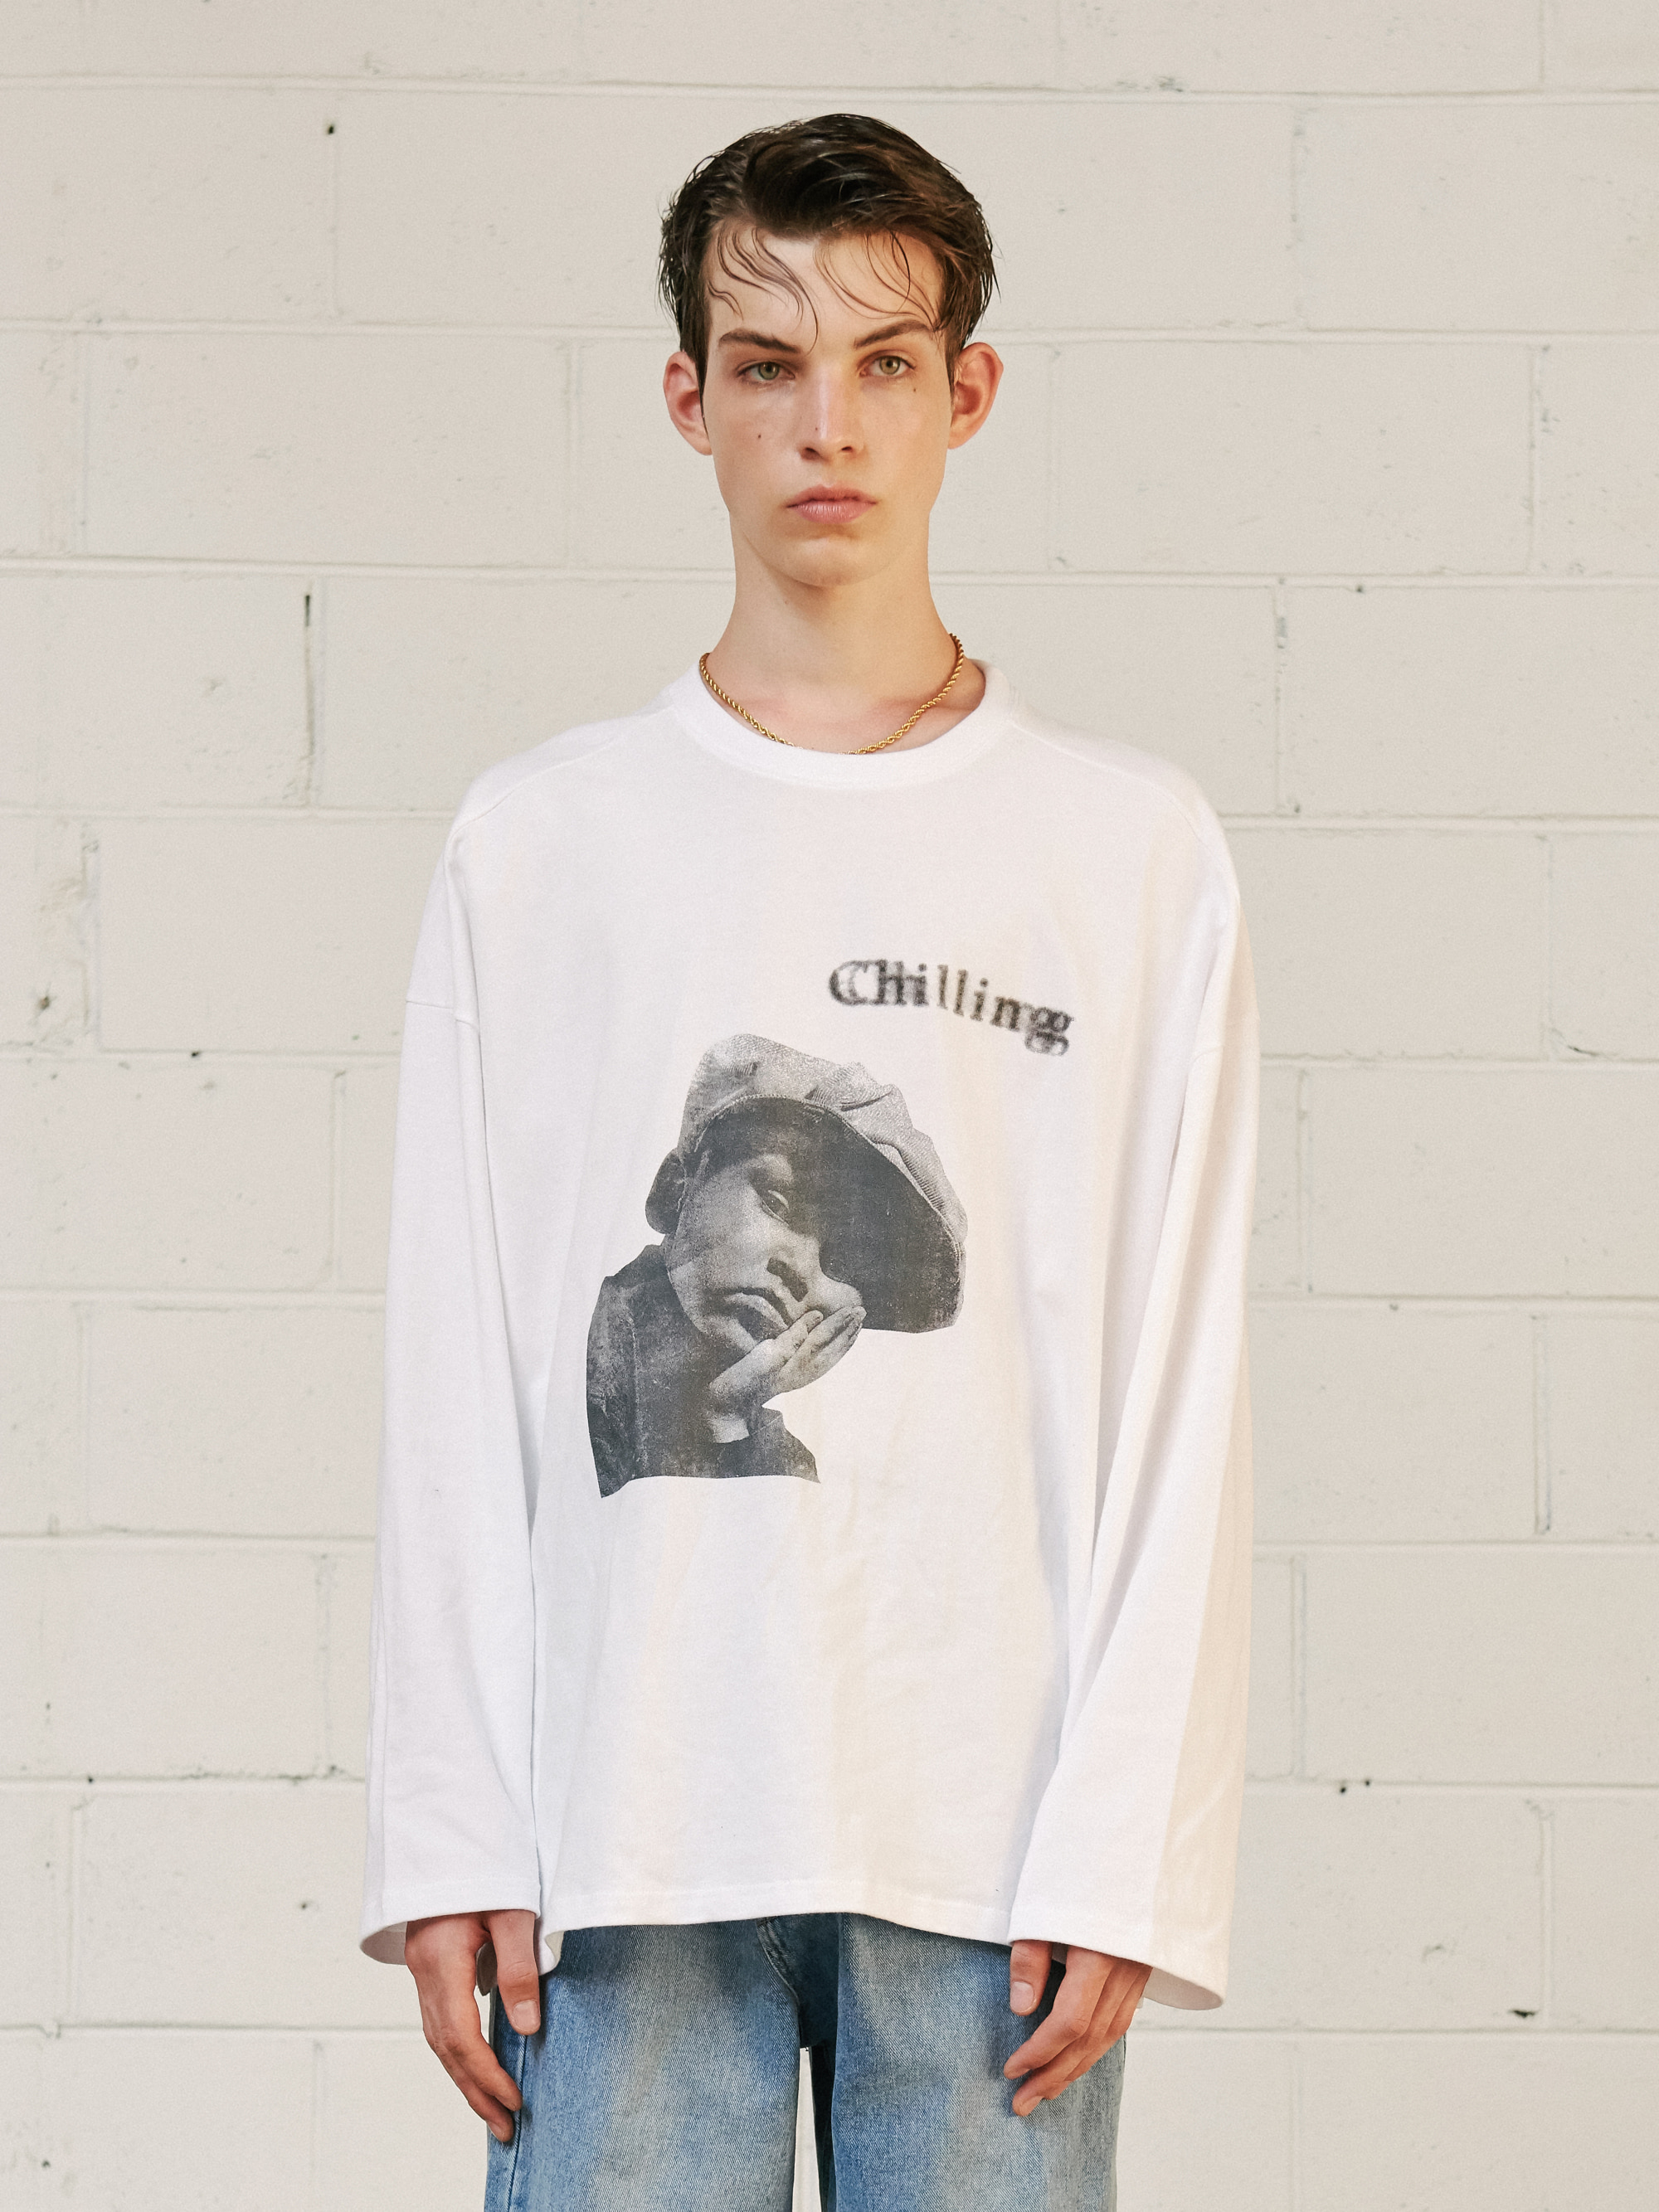 V1 CHILLING LONG SLEEVE T-SHIRT (WHITE)